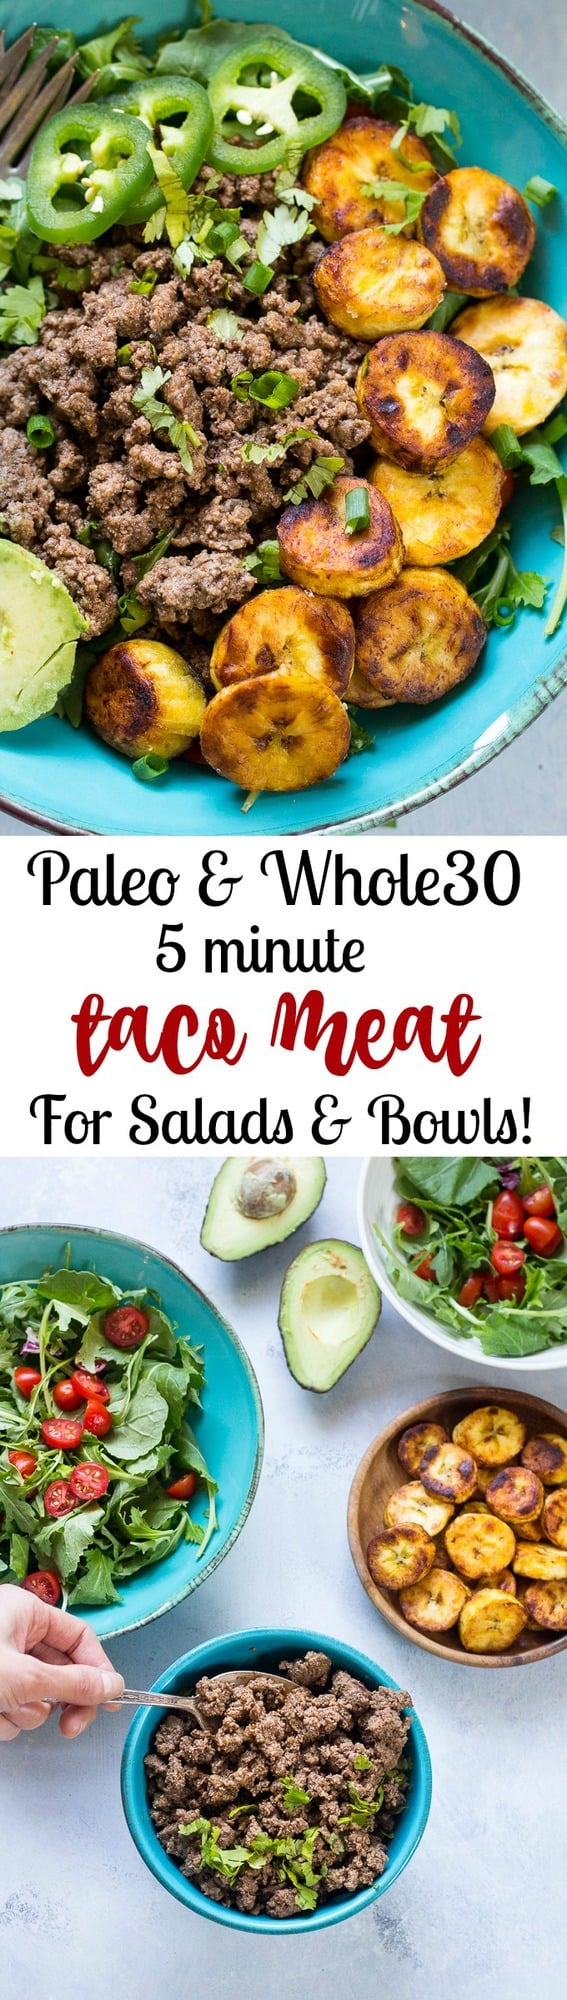 Easy 5 minute Paleo taco meat that's perfect for quick taco salads, bowls, or wraps. Whole30 friendly and great for busy families for weeknight dinners!  Works great to make ahead of time during meal prep too.